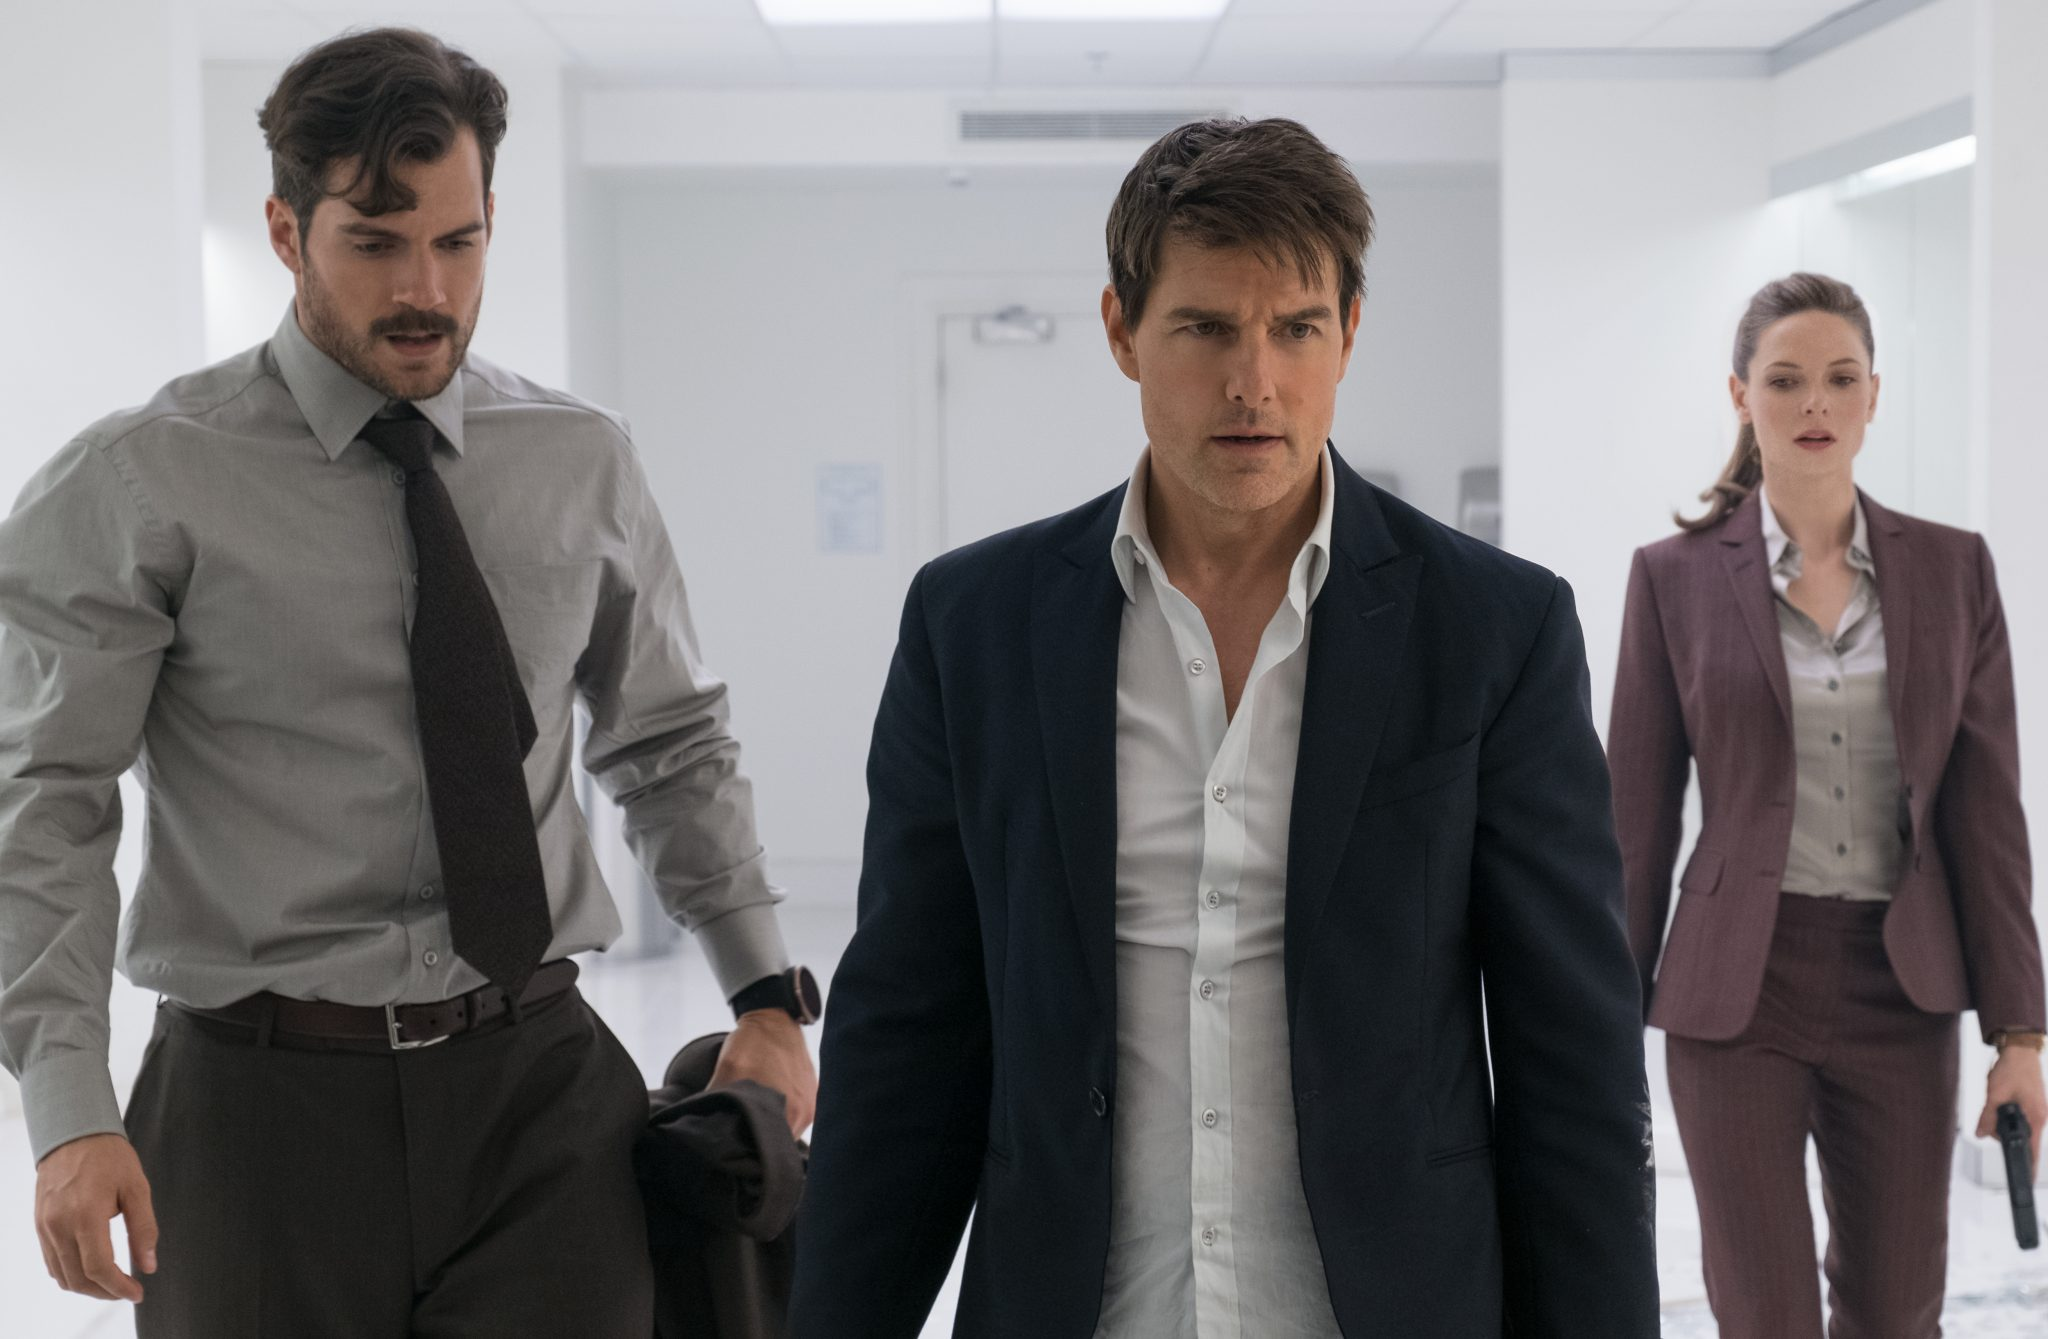 """Henry Cavill als """"August Walker"""", Tom Cruise als """"Ethan Hunt"""" und Rebecca Ferguson als """"Ilsa Faust"""" in MISSION: IMPOSSIBLE - FALLOUT © Paramount Pictures"""